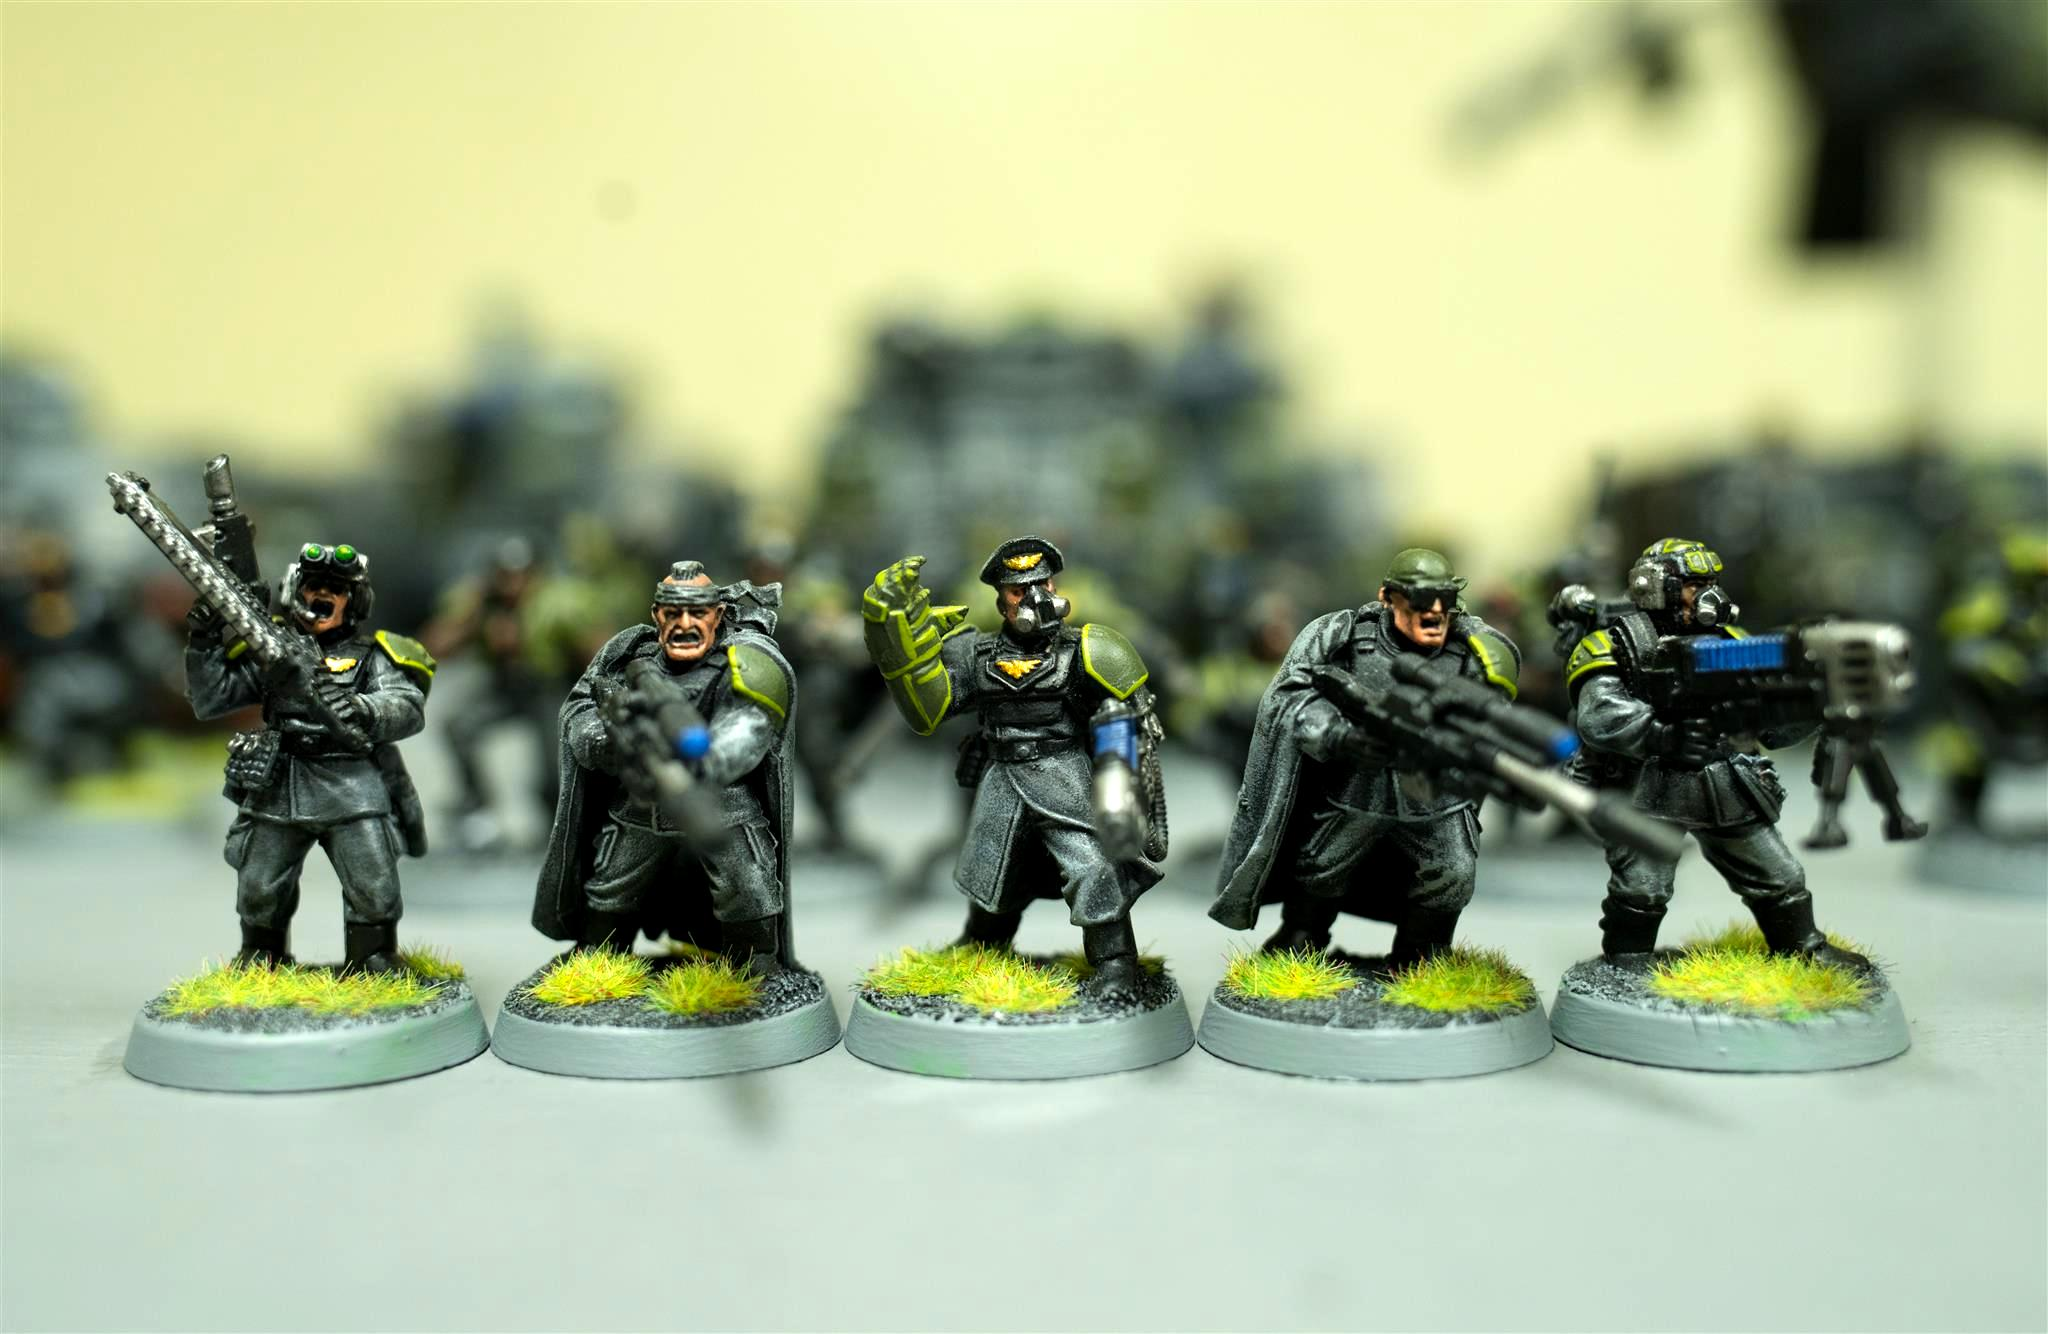 317th Sathanas Hoplites, Astra Militarum, Bodyguard, Colonel, Colonel With Powerfist, Command Squad, Guard, Imp Guard, Imperial Guard, Plasmagunner, Snipers